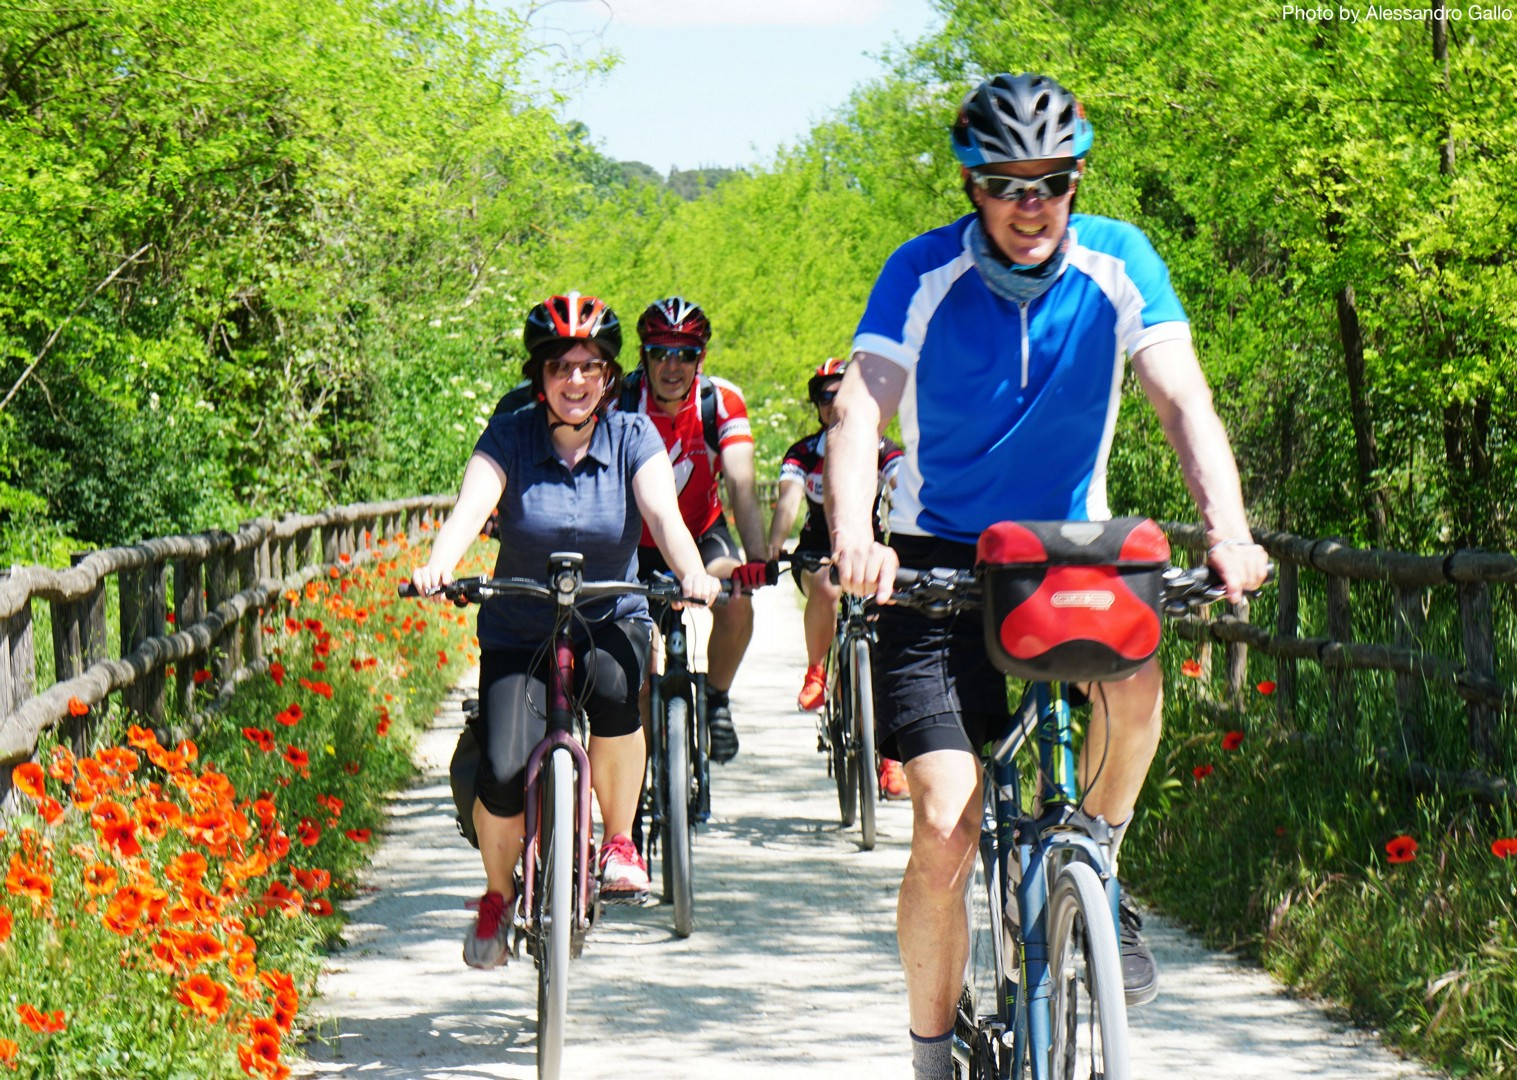 Guided-Leisure-Cycling-Holiday-Italy-Via-Francigena-Tuscany-to-Rome-better-by-bike - Italy - Via Francigena (Tuscany to Rome) - Guided Leisure Cycling Holiday - Leisure Cycling